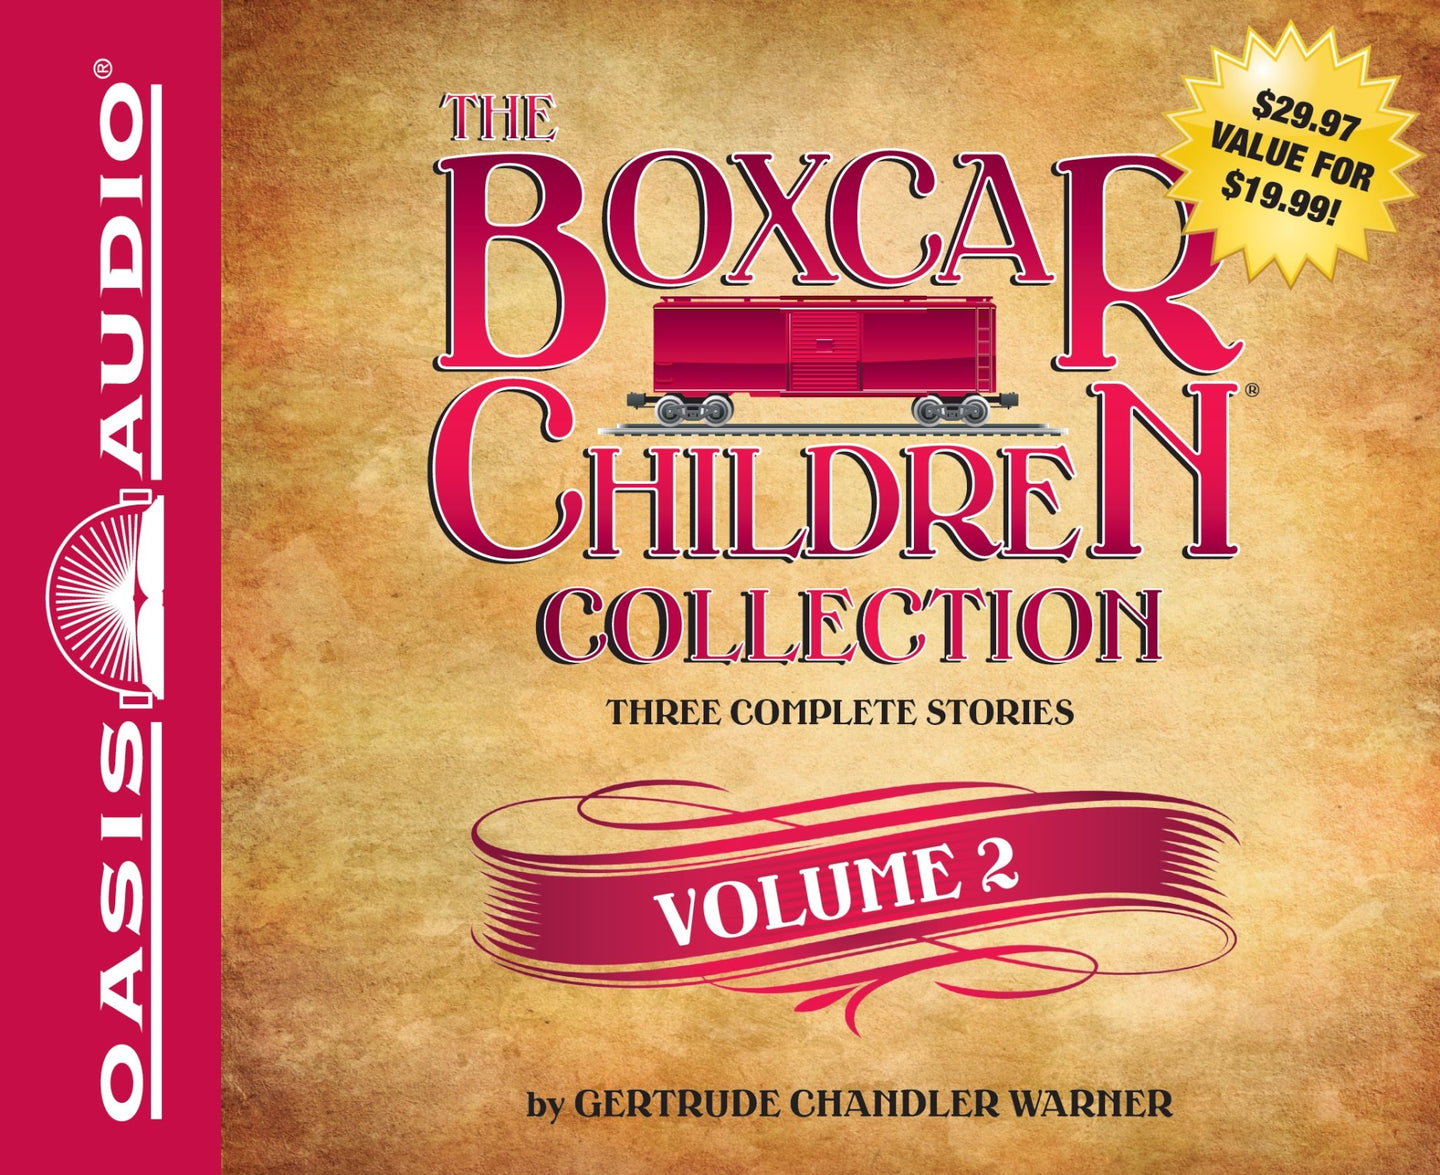 The Boxcar Children Collection Audio CD: Volume 2 (New) - Little Green Schoolhouse Books